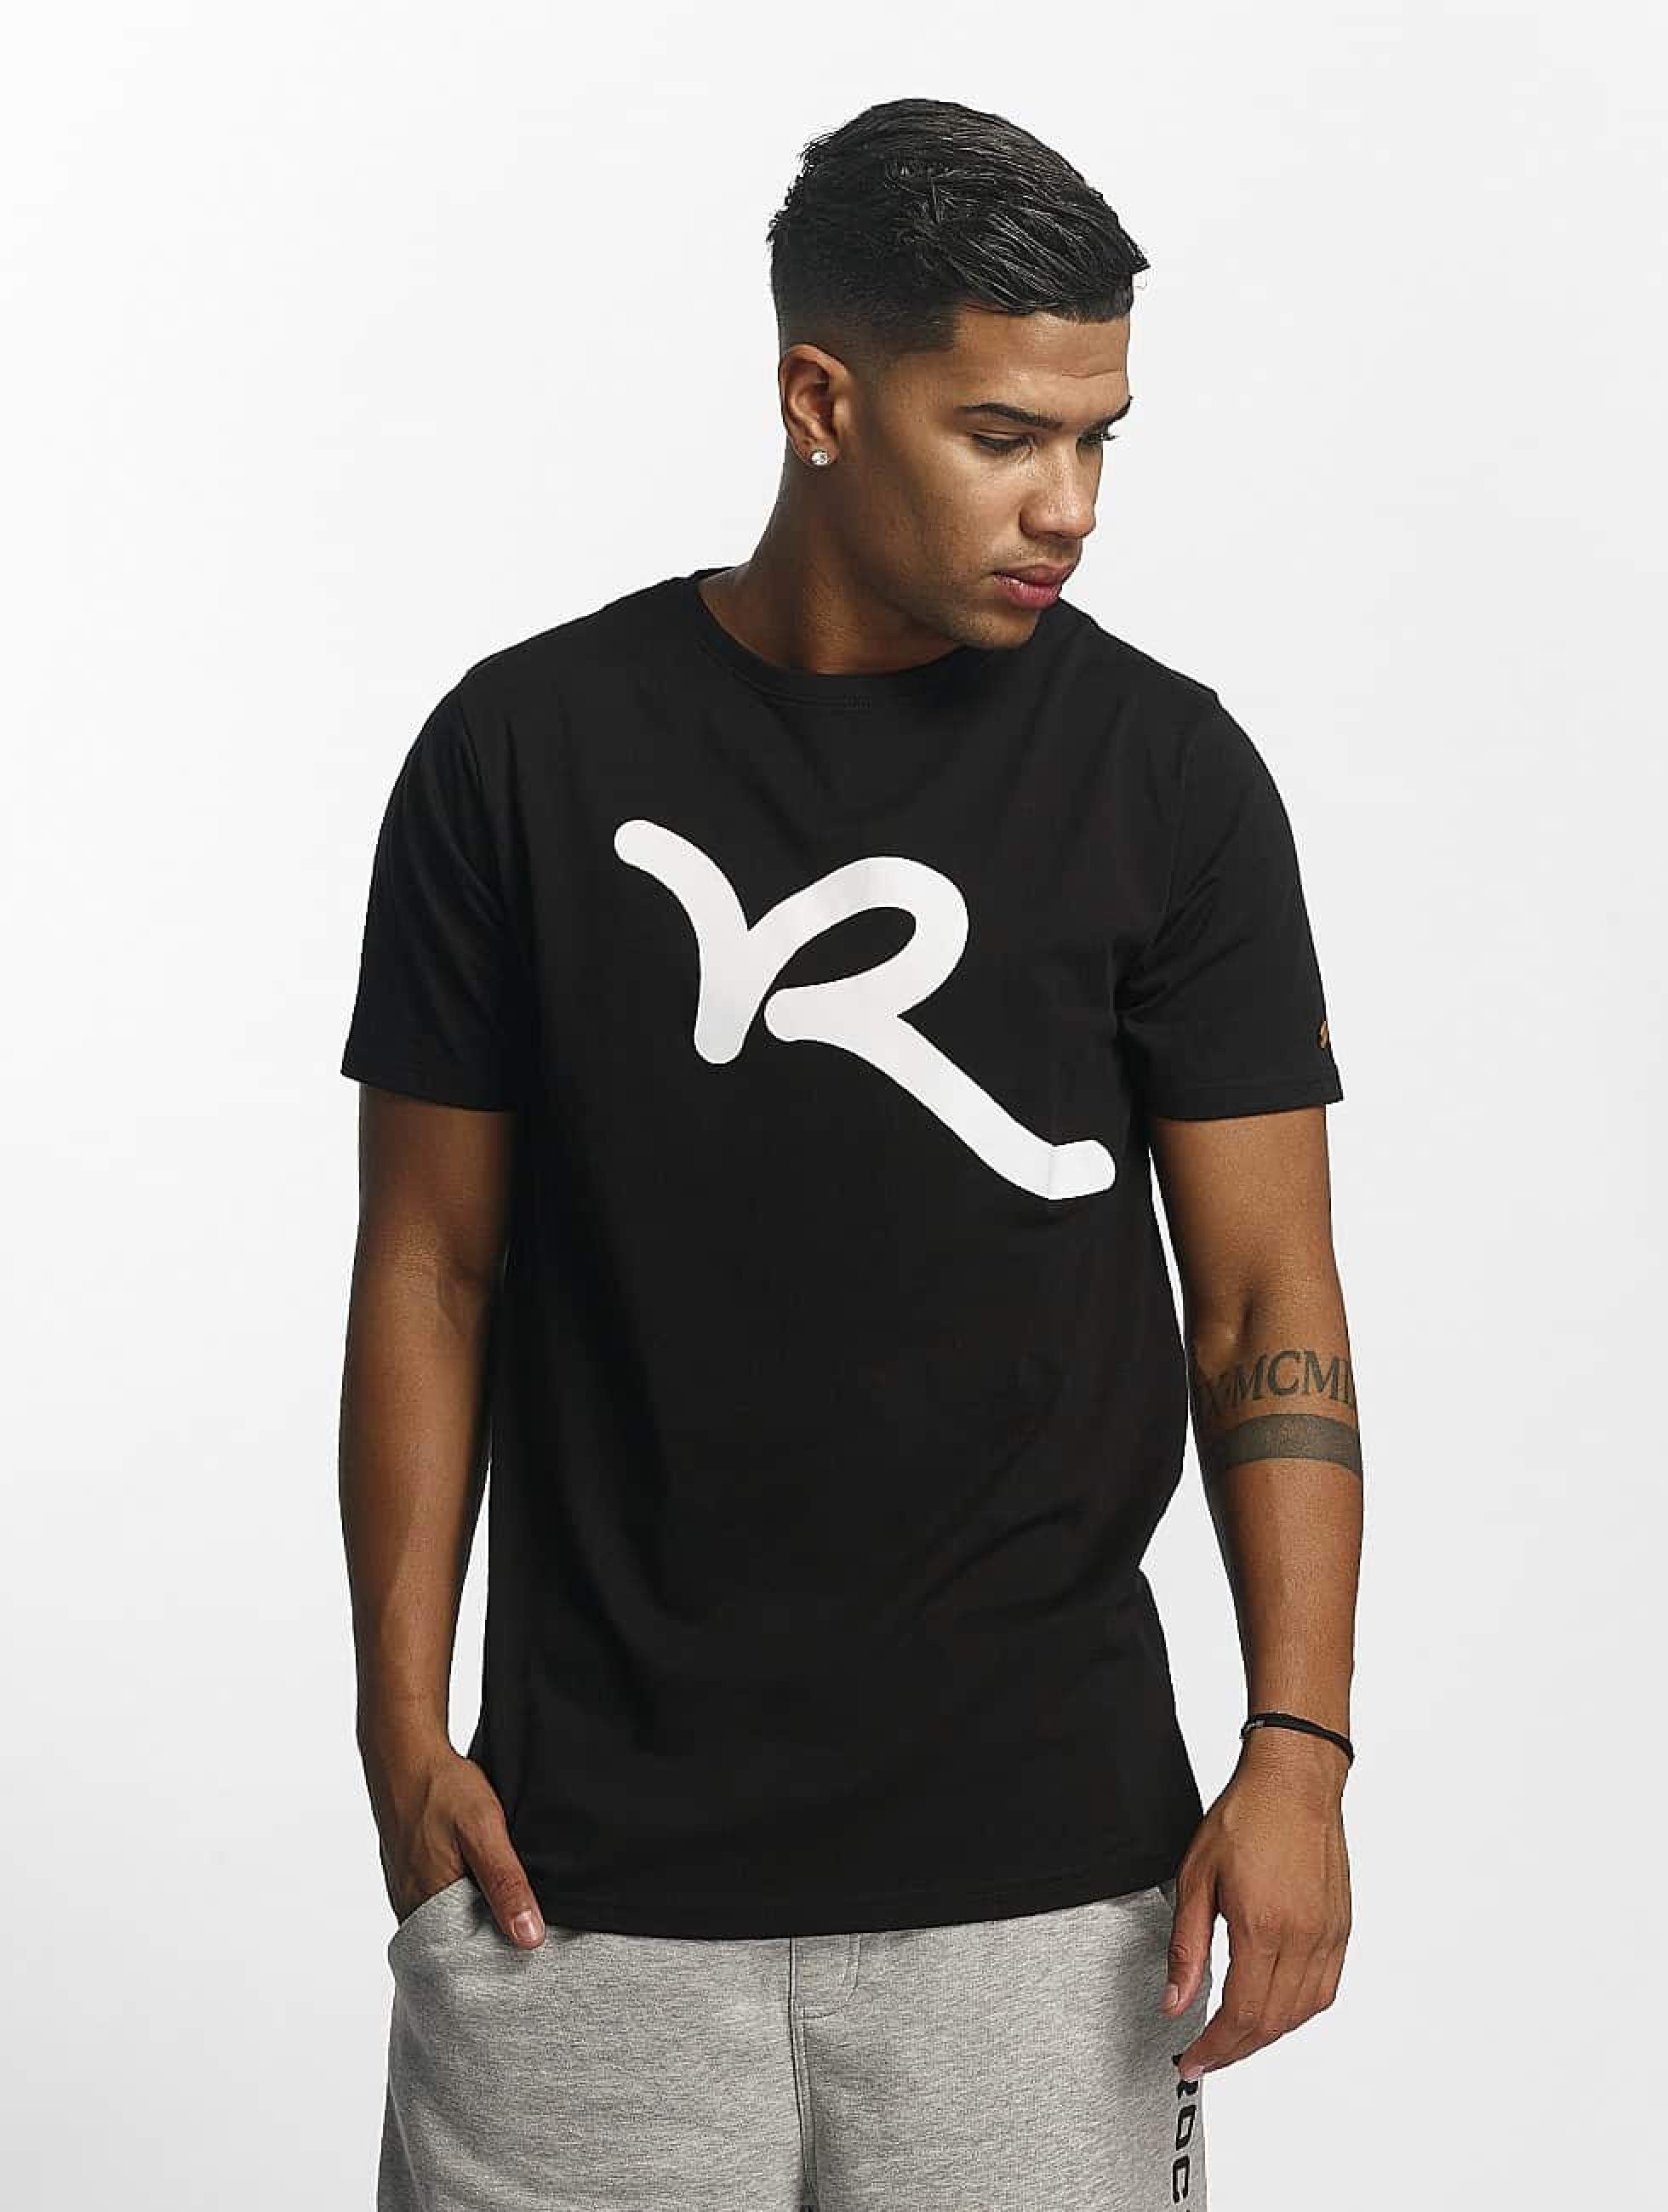 Rocawear / T-Shirt Logo in black S